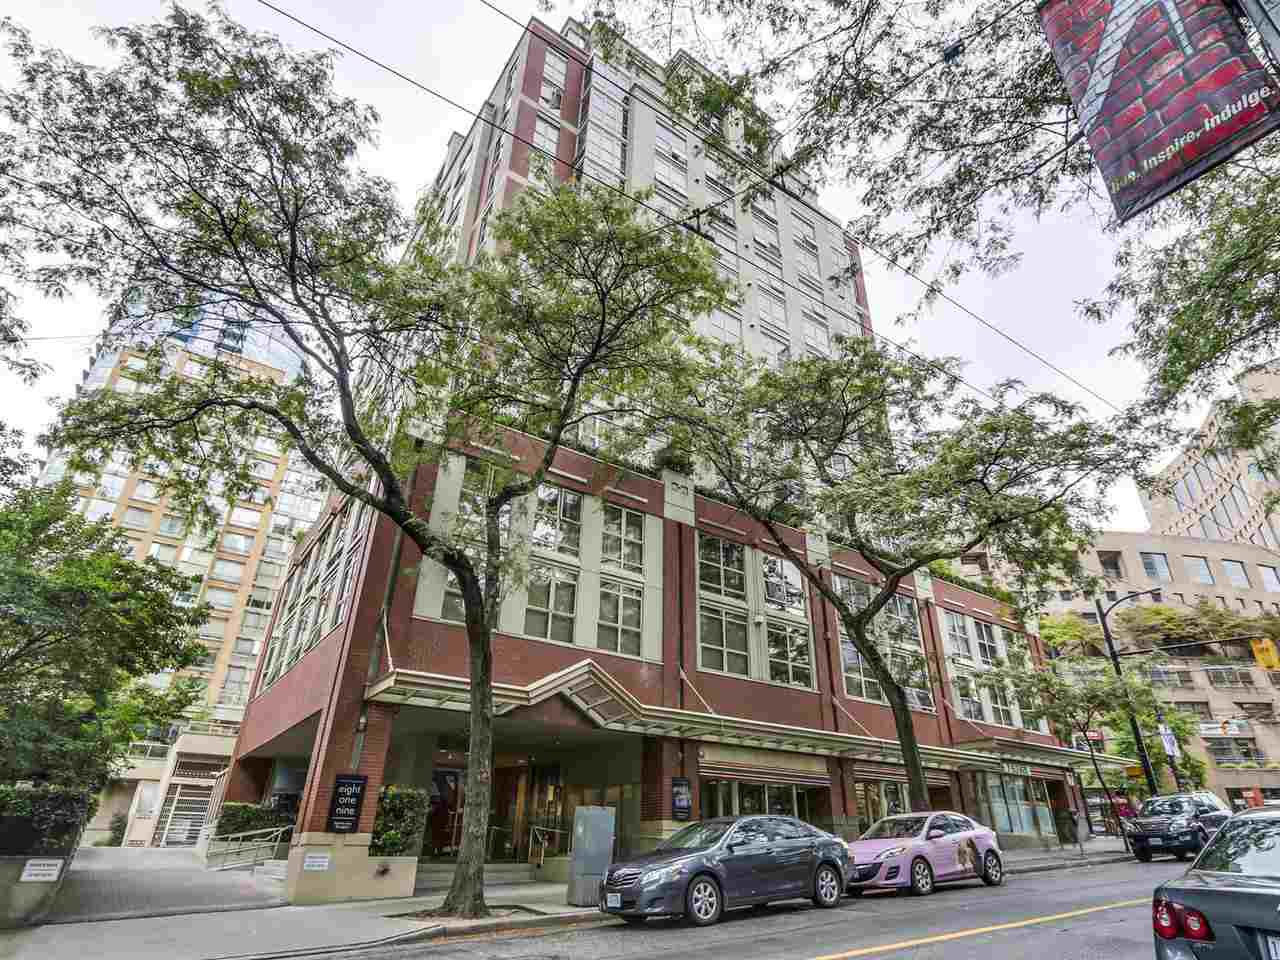 """Main Photo: 1004 819 HAMILTON Street in Vancouver: Downtown VW Condo for sale in """"819 HAMILTON"""" (Vancouver West)  : MLS®# R2105392"""